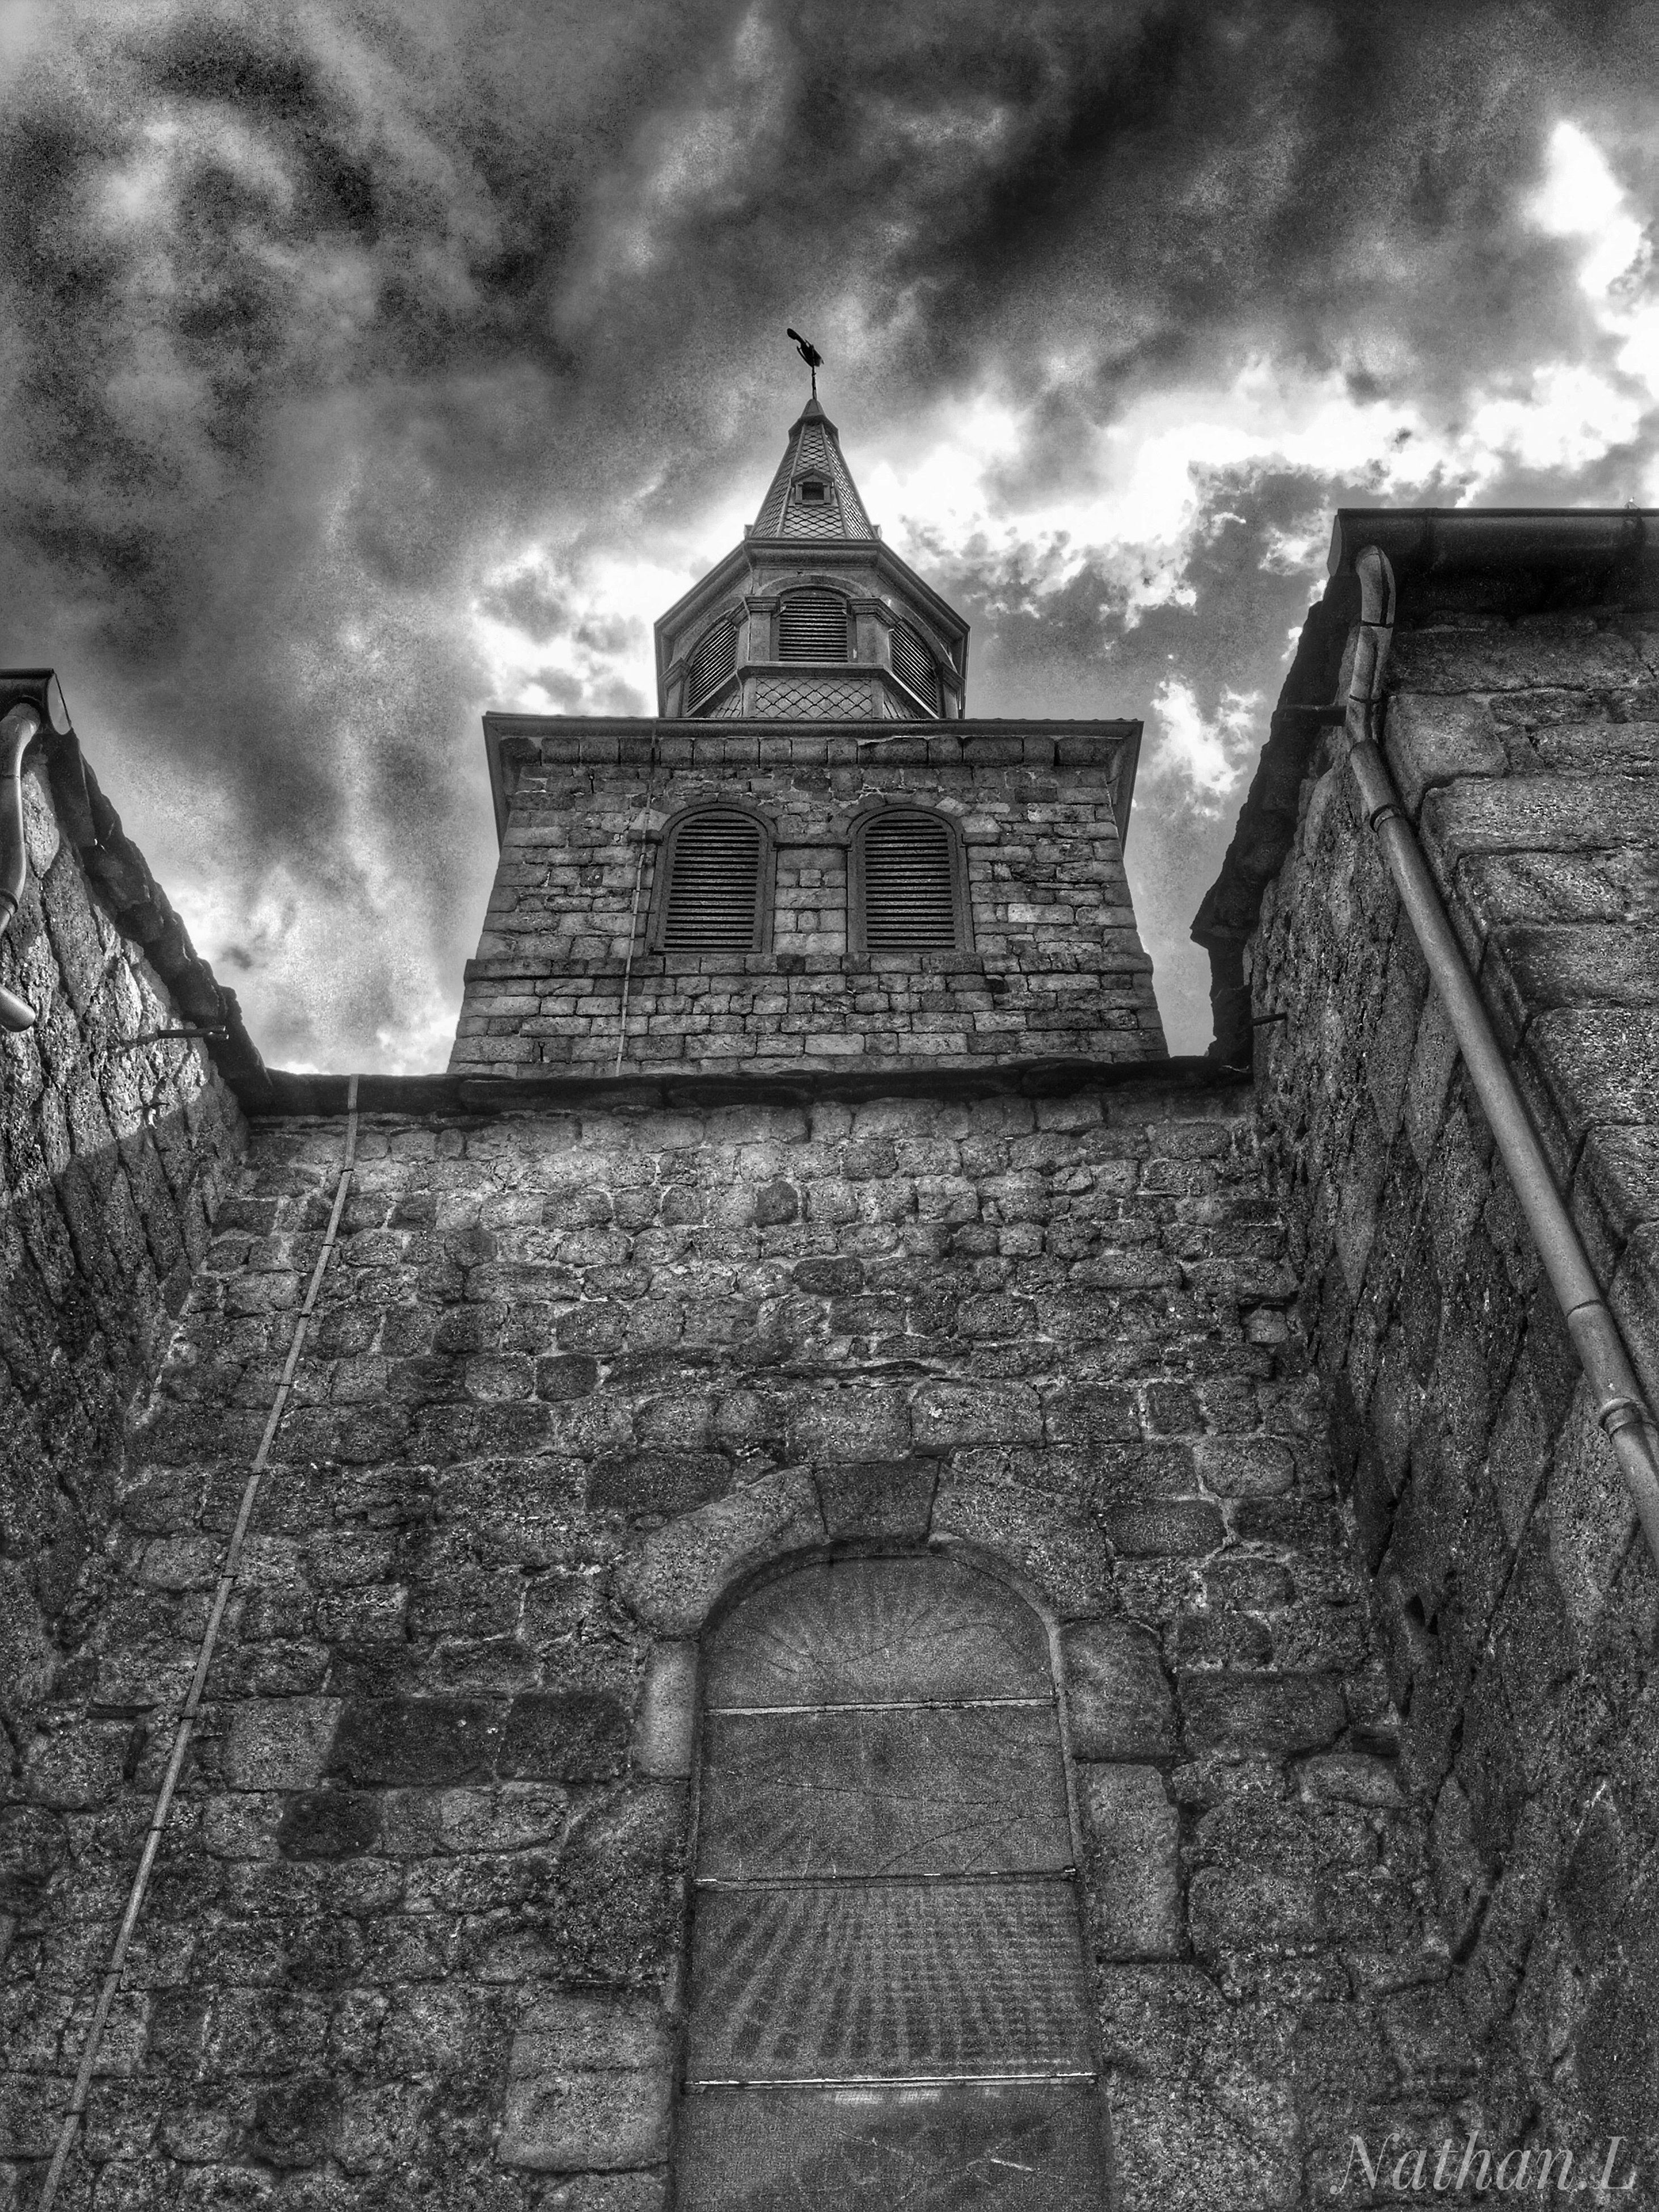 architecture, building exterior, built structure, low angle view, sky, cloud - sky, wall - building feature, cloud, wall, cloudy, outdoors, branch, storm cloud, day, spire, no people, place of worship, history, weathered, black and white